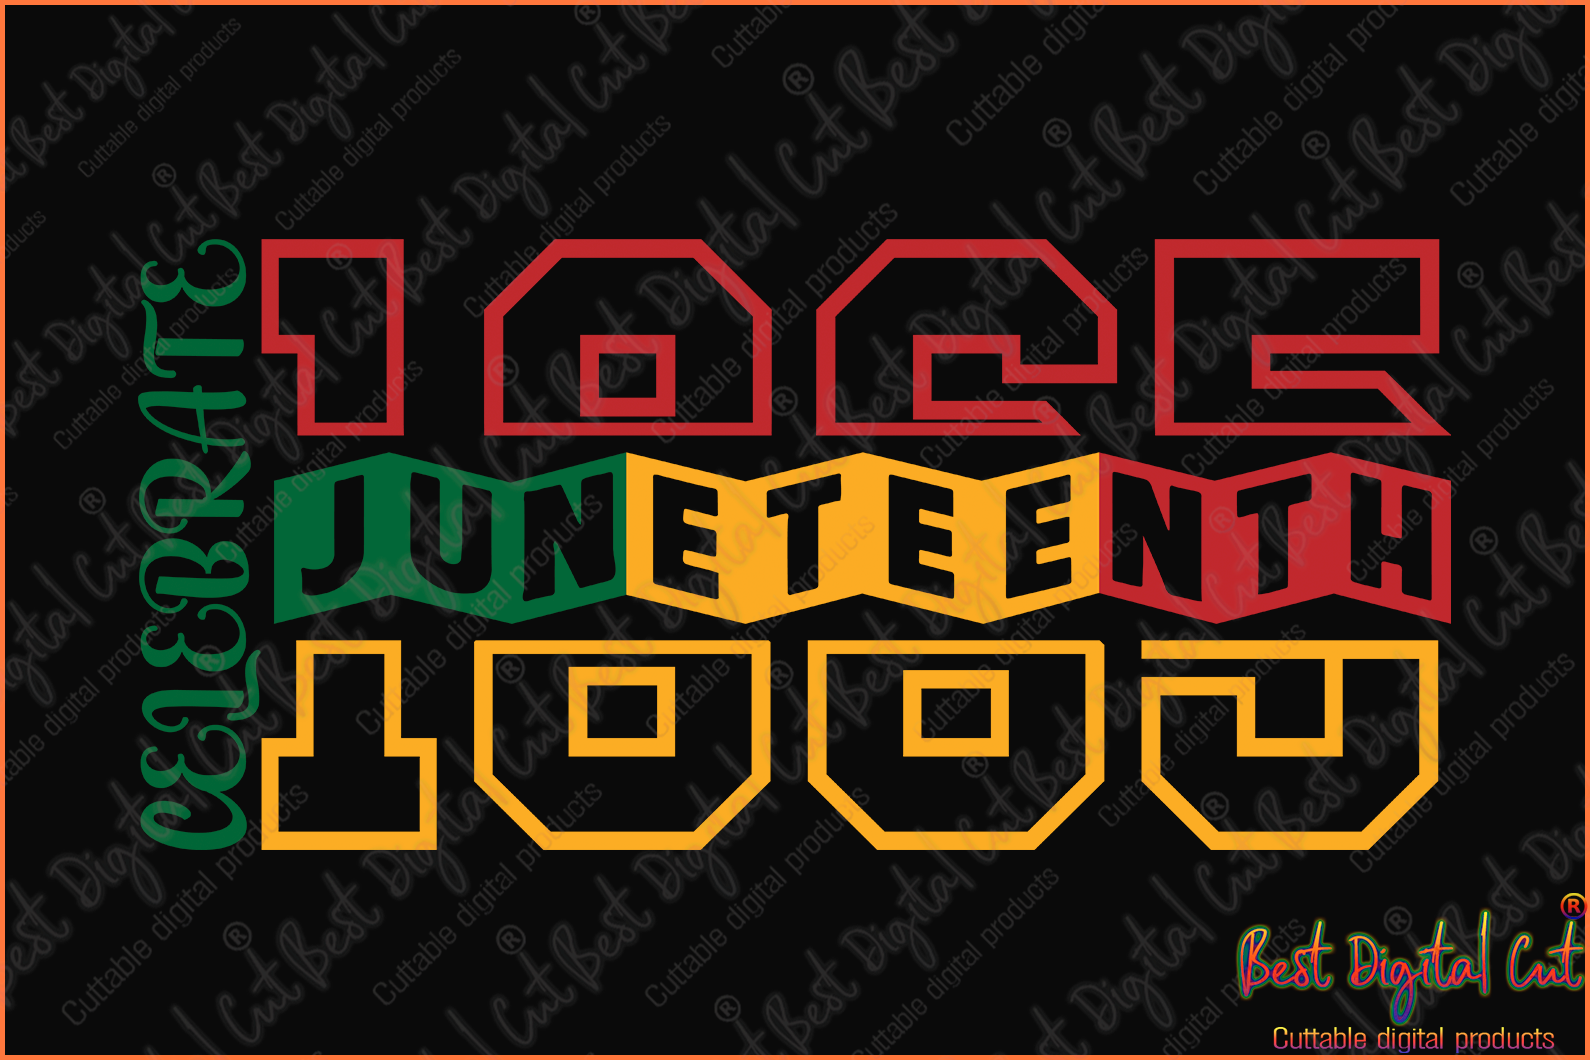 Juneteenth 1865  svg,freedom day svg,jubilee day svg,American holiday,June 19th svg,1776 July 4th,emancipation day svg,independence day svg,black African hands,American pride gift,black lives matter shirt,black history month